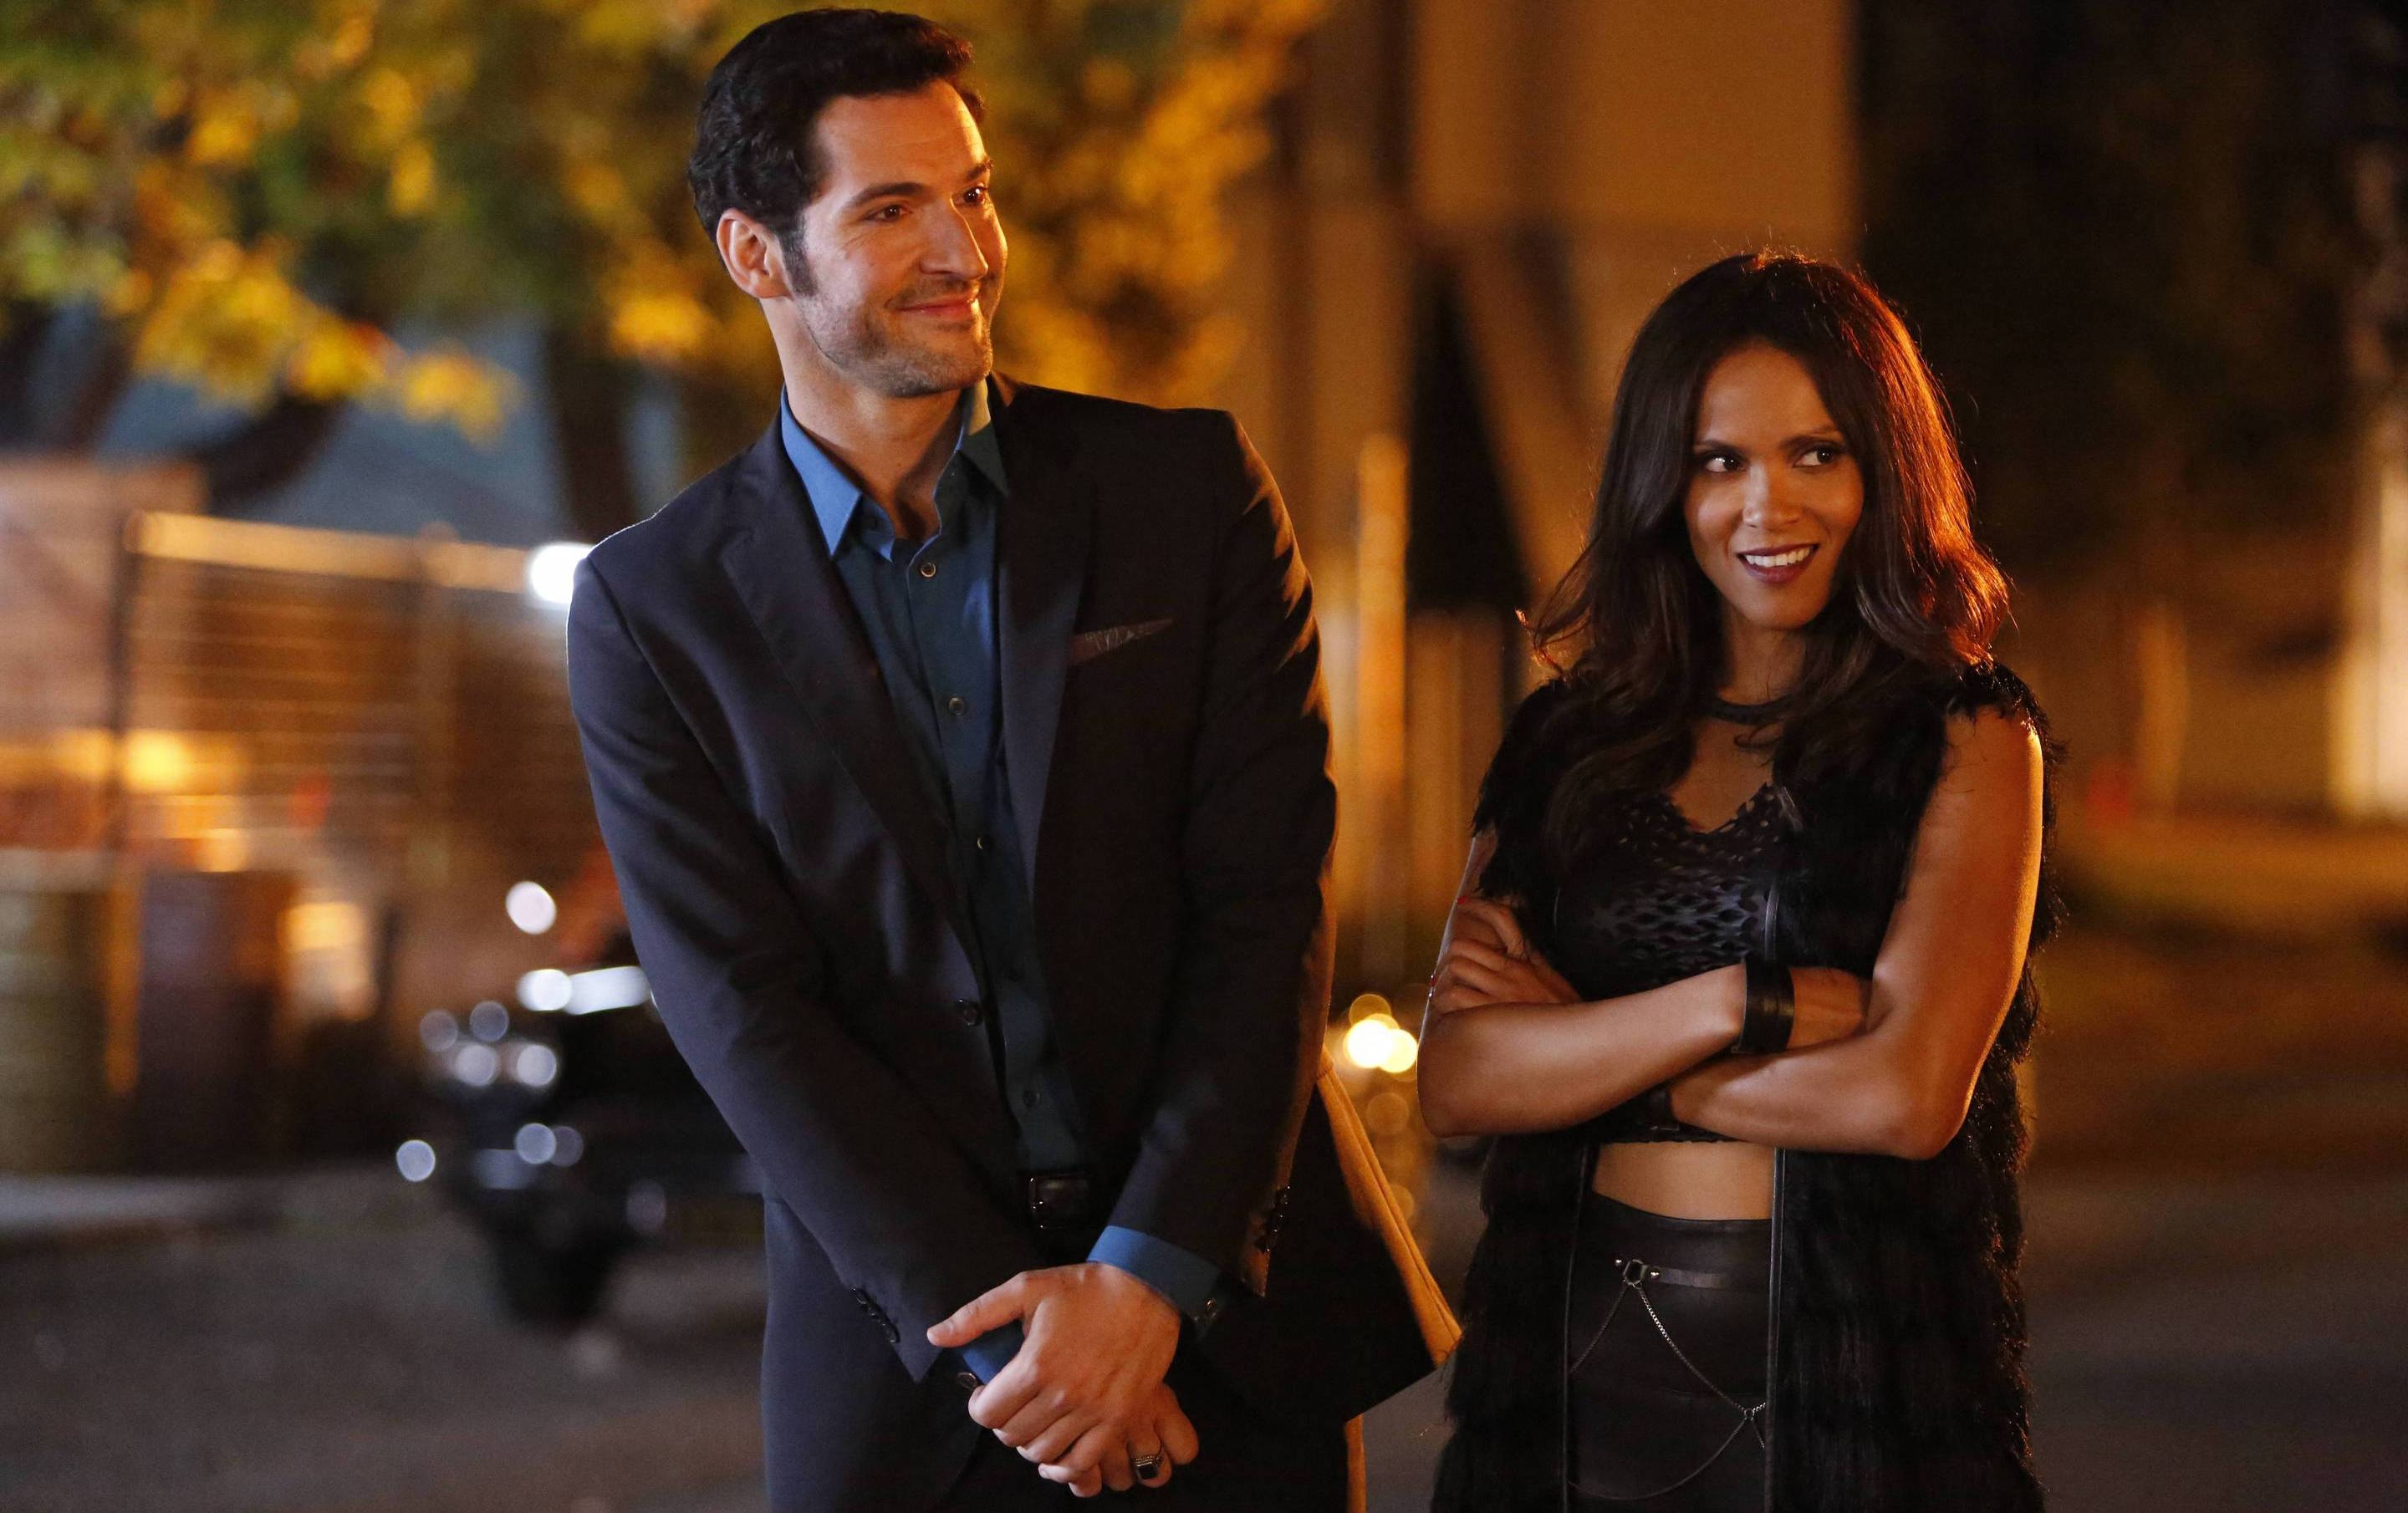 Lucifer Wallpaper 4k: Lucifer And Mazikeen, HD Tv Shows, 4k Wallpapers, Images